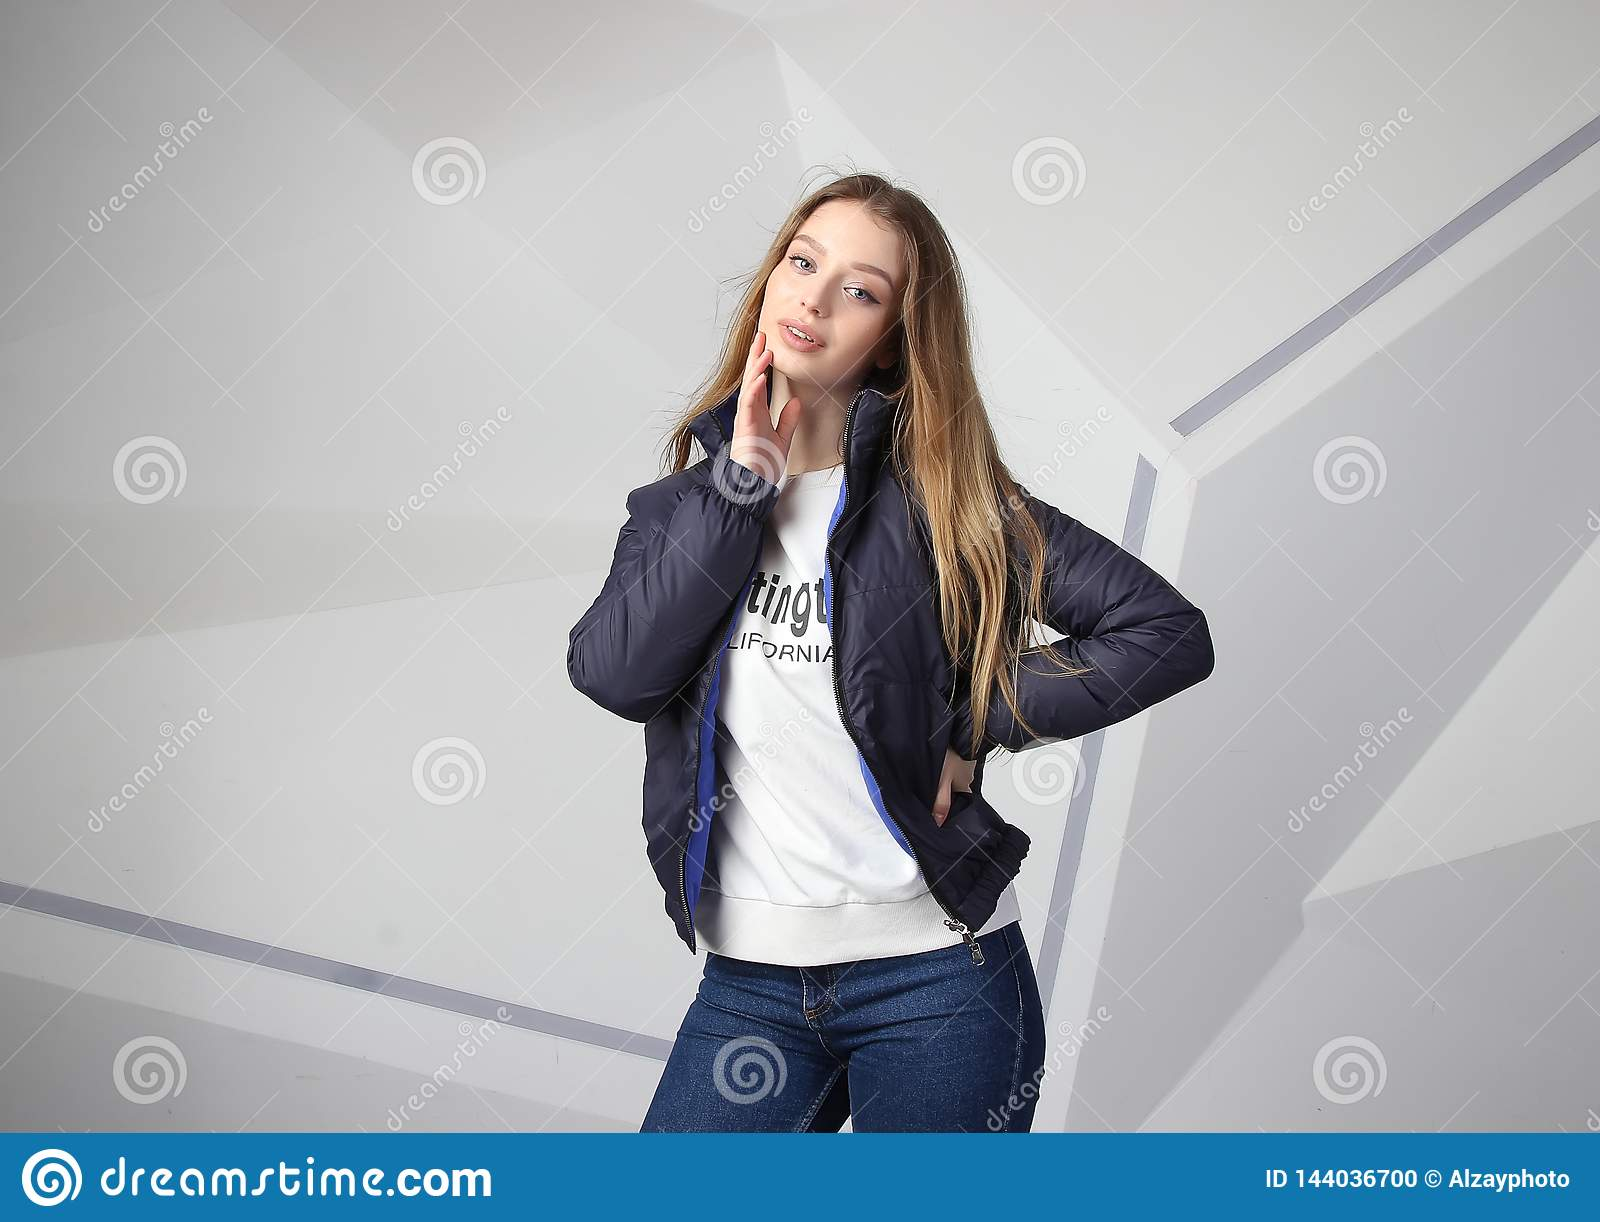 Young girl girl wearing  jacket with area for your logo, mock-up of white women hoodie